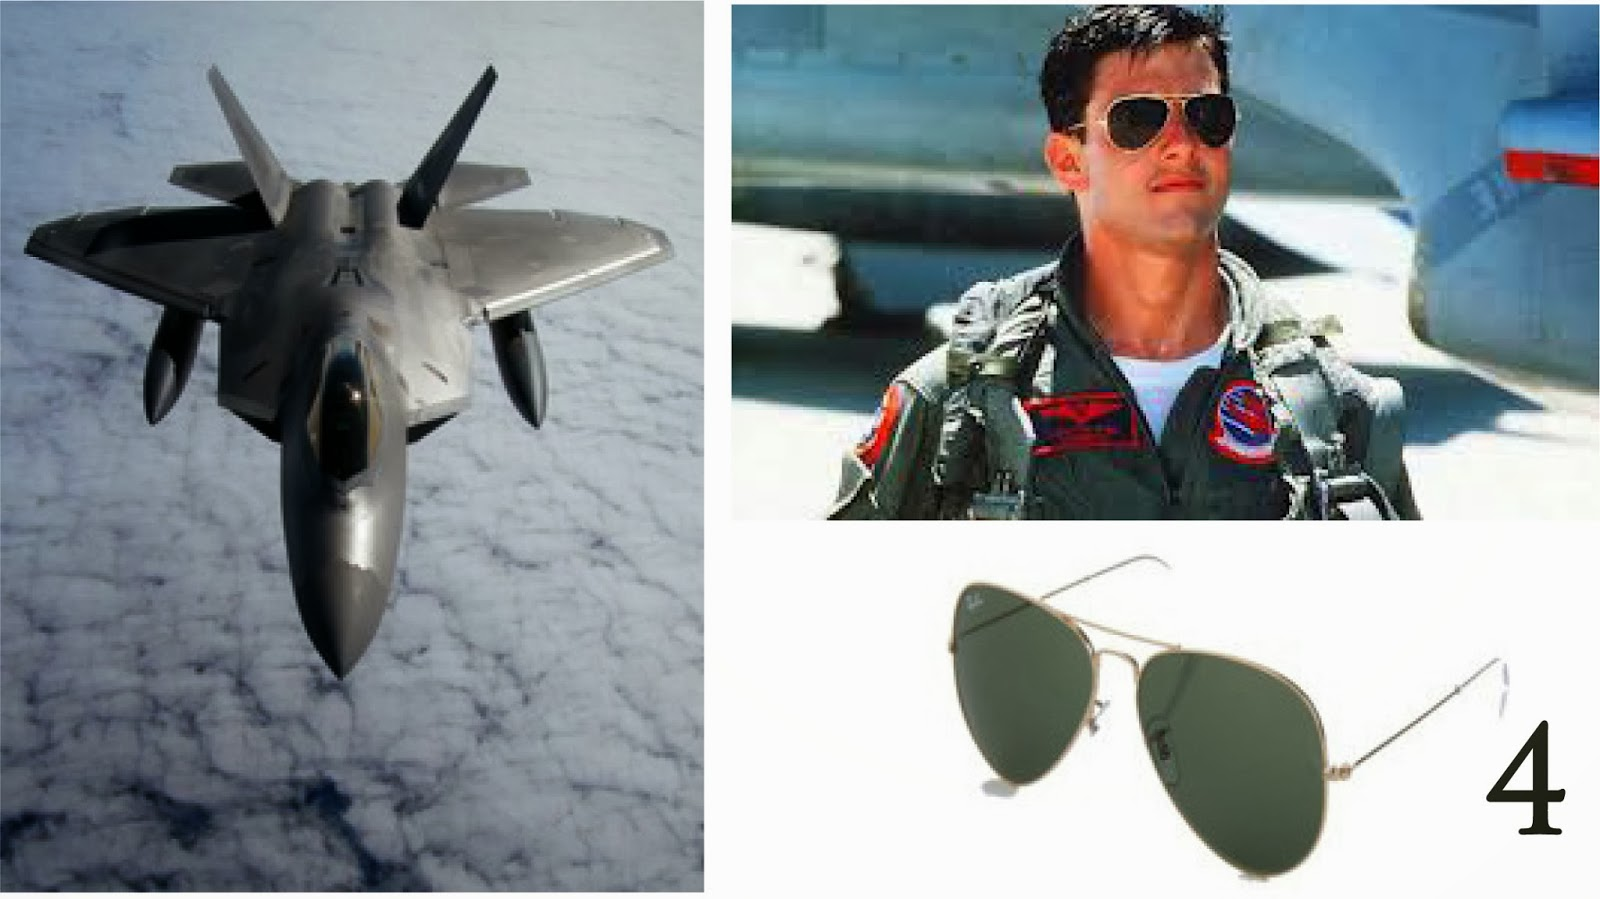 ray ban aviators top gun